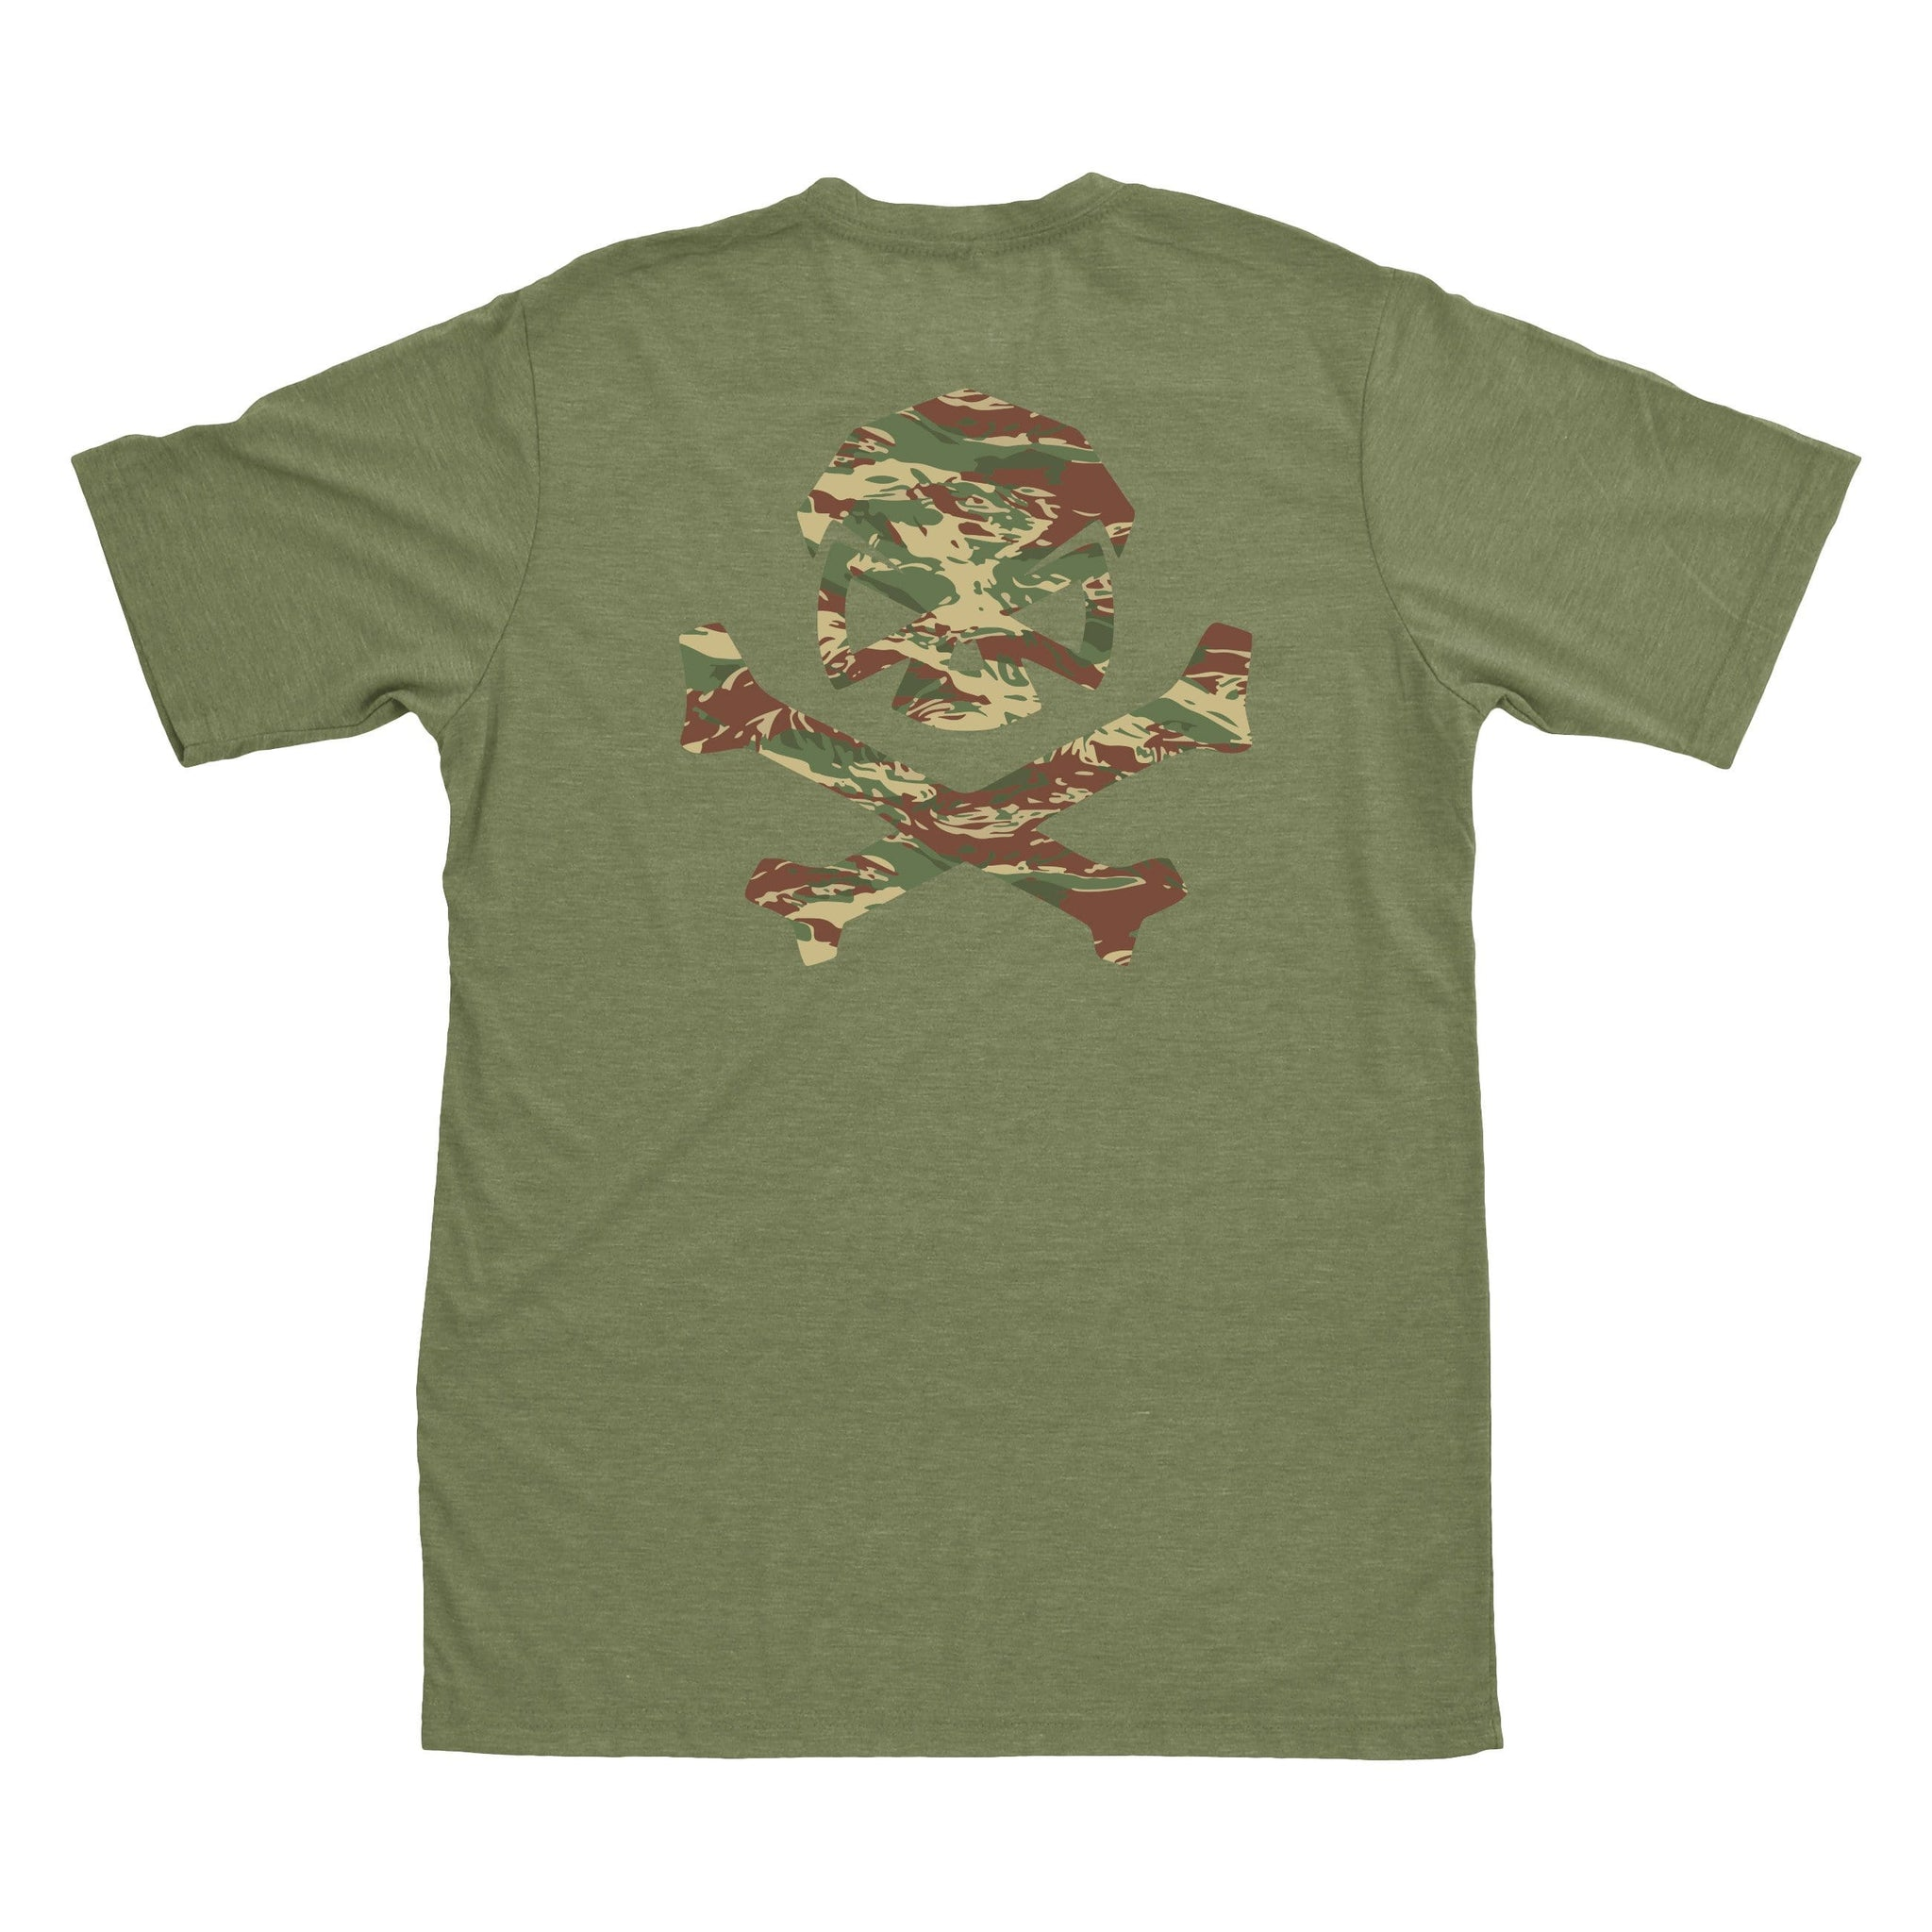 Hitter in the Mist Tee - Military Green/Green_Brushstroke - T-Shirts - Pipe Hitters Union